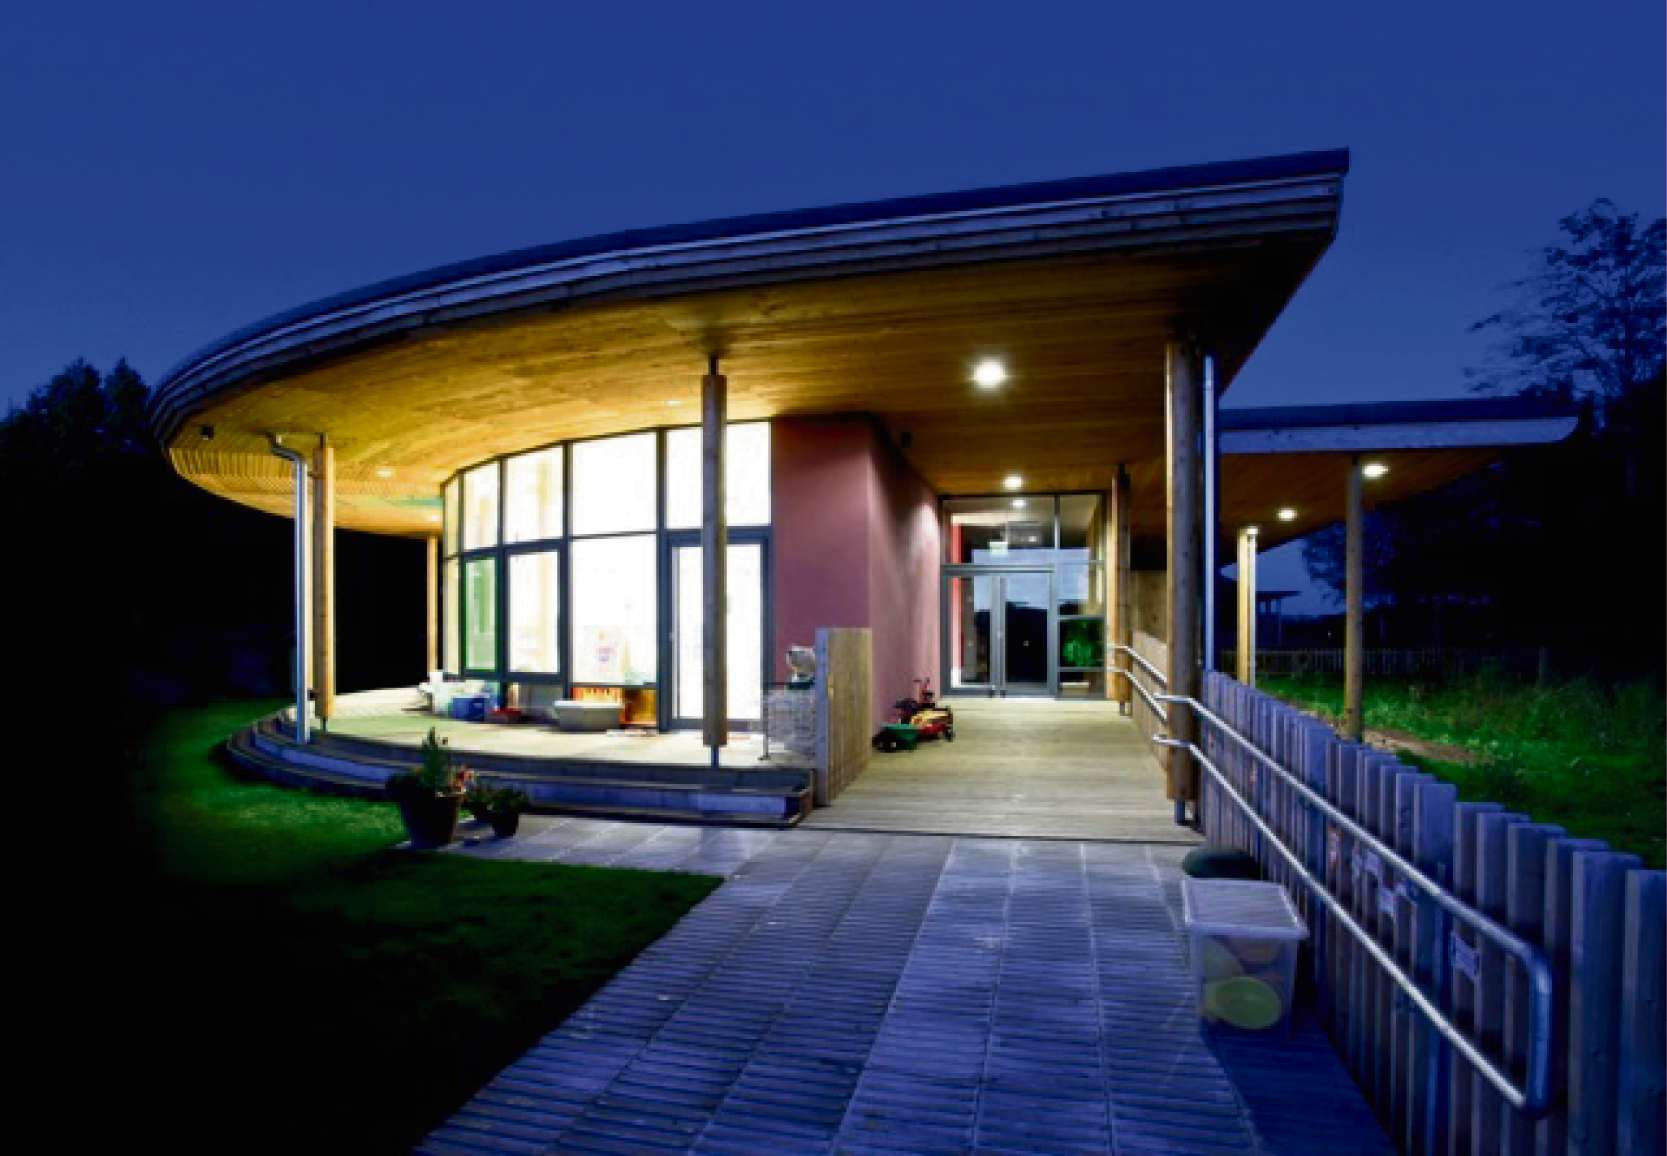 With an open plan and glass walls, Ashperton Primary Academy is designed to maximise its rural surroundings.